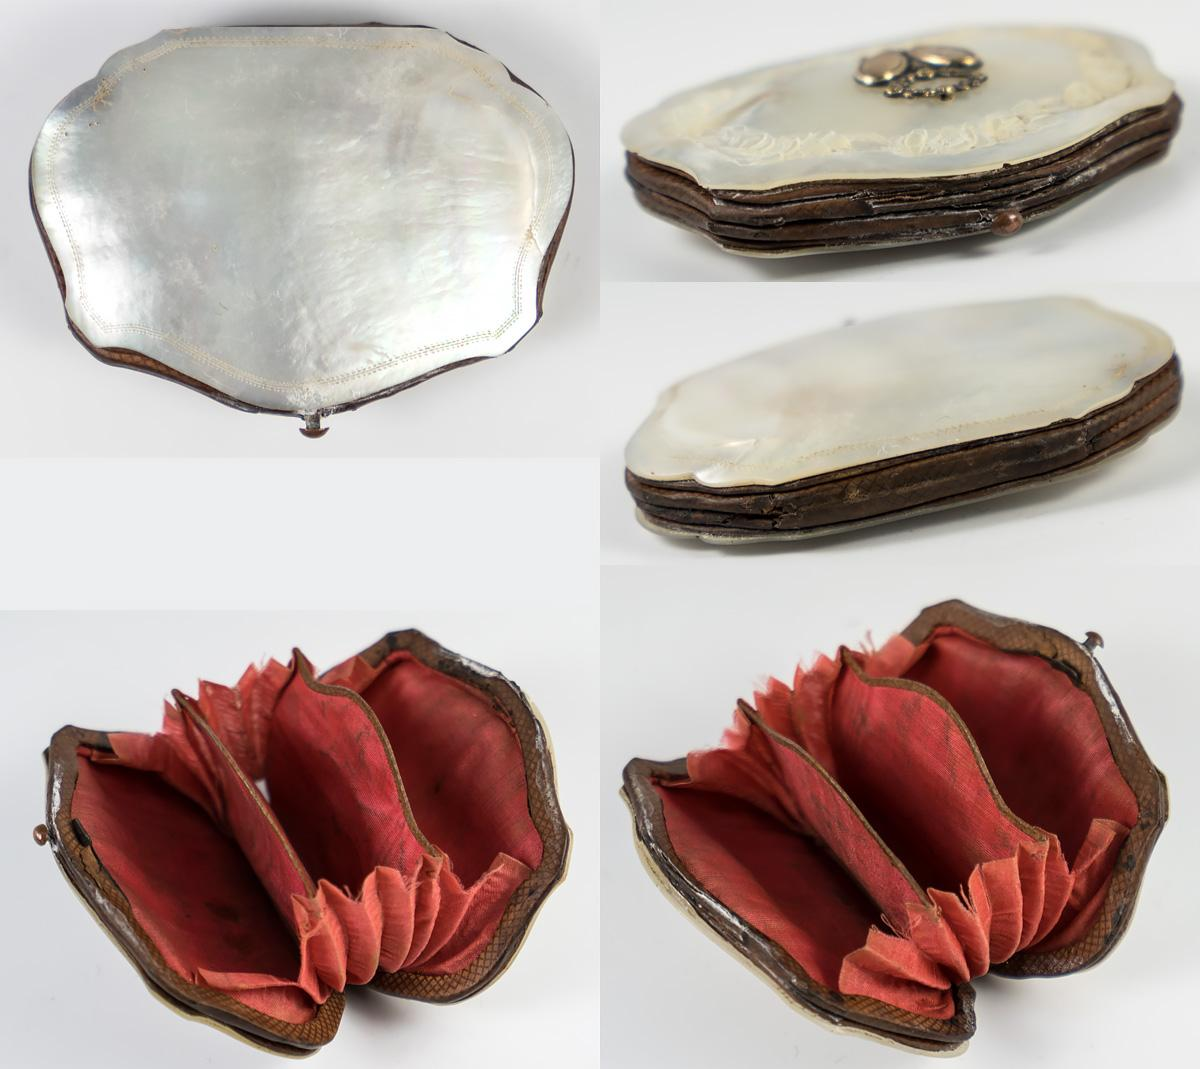 Le Meilleur Antique French Coin Purse Carved Mother Of Pearl Ce Mois Ci